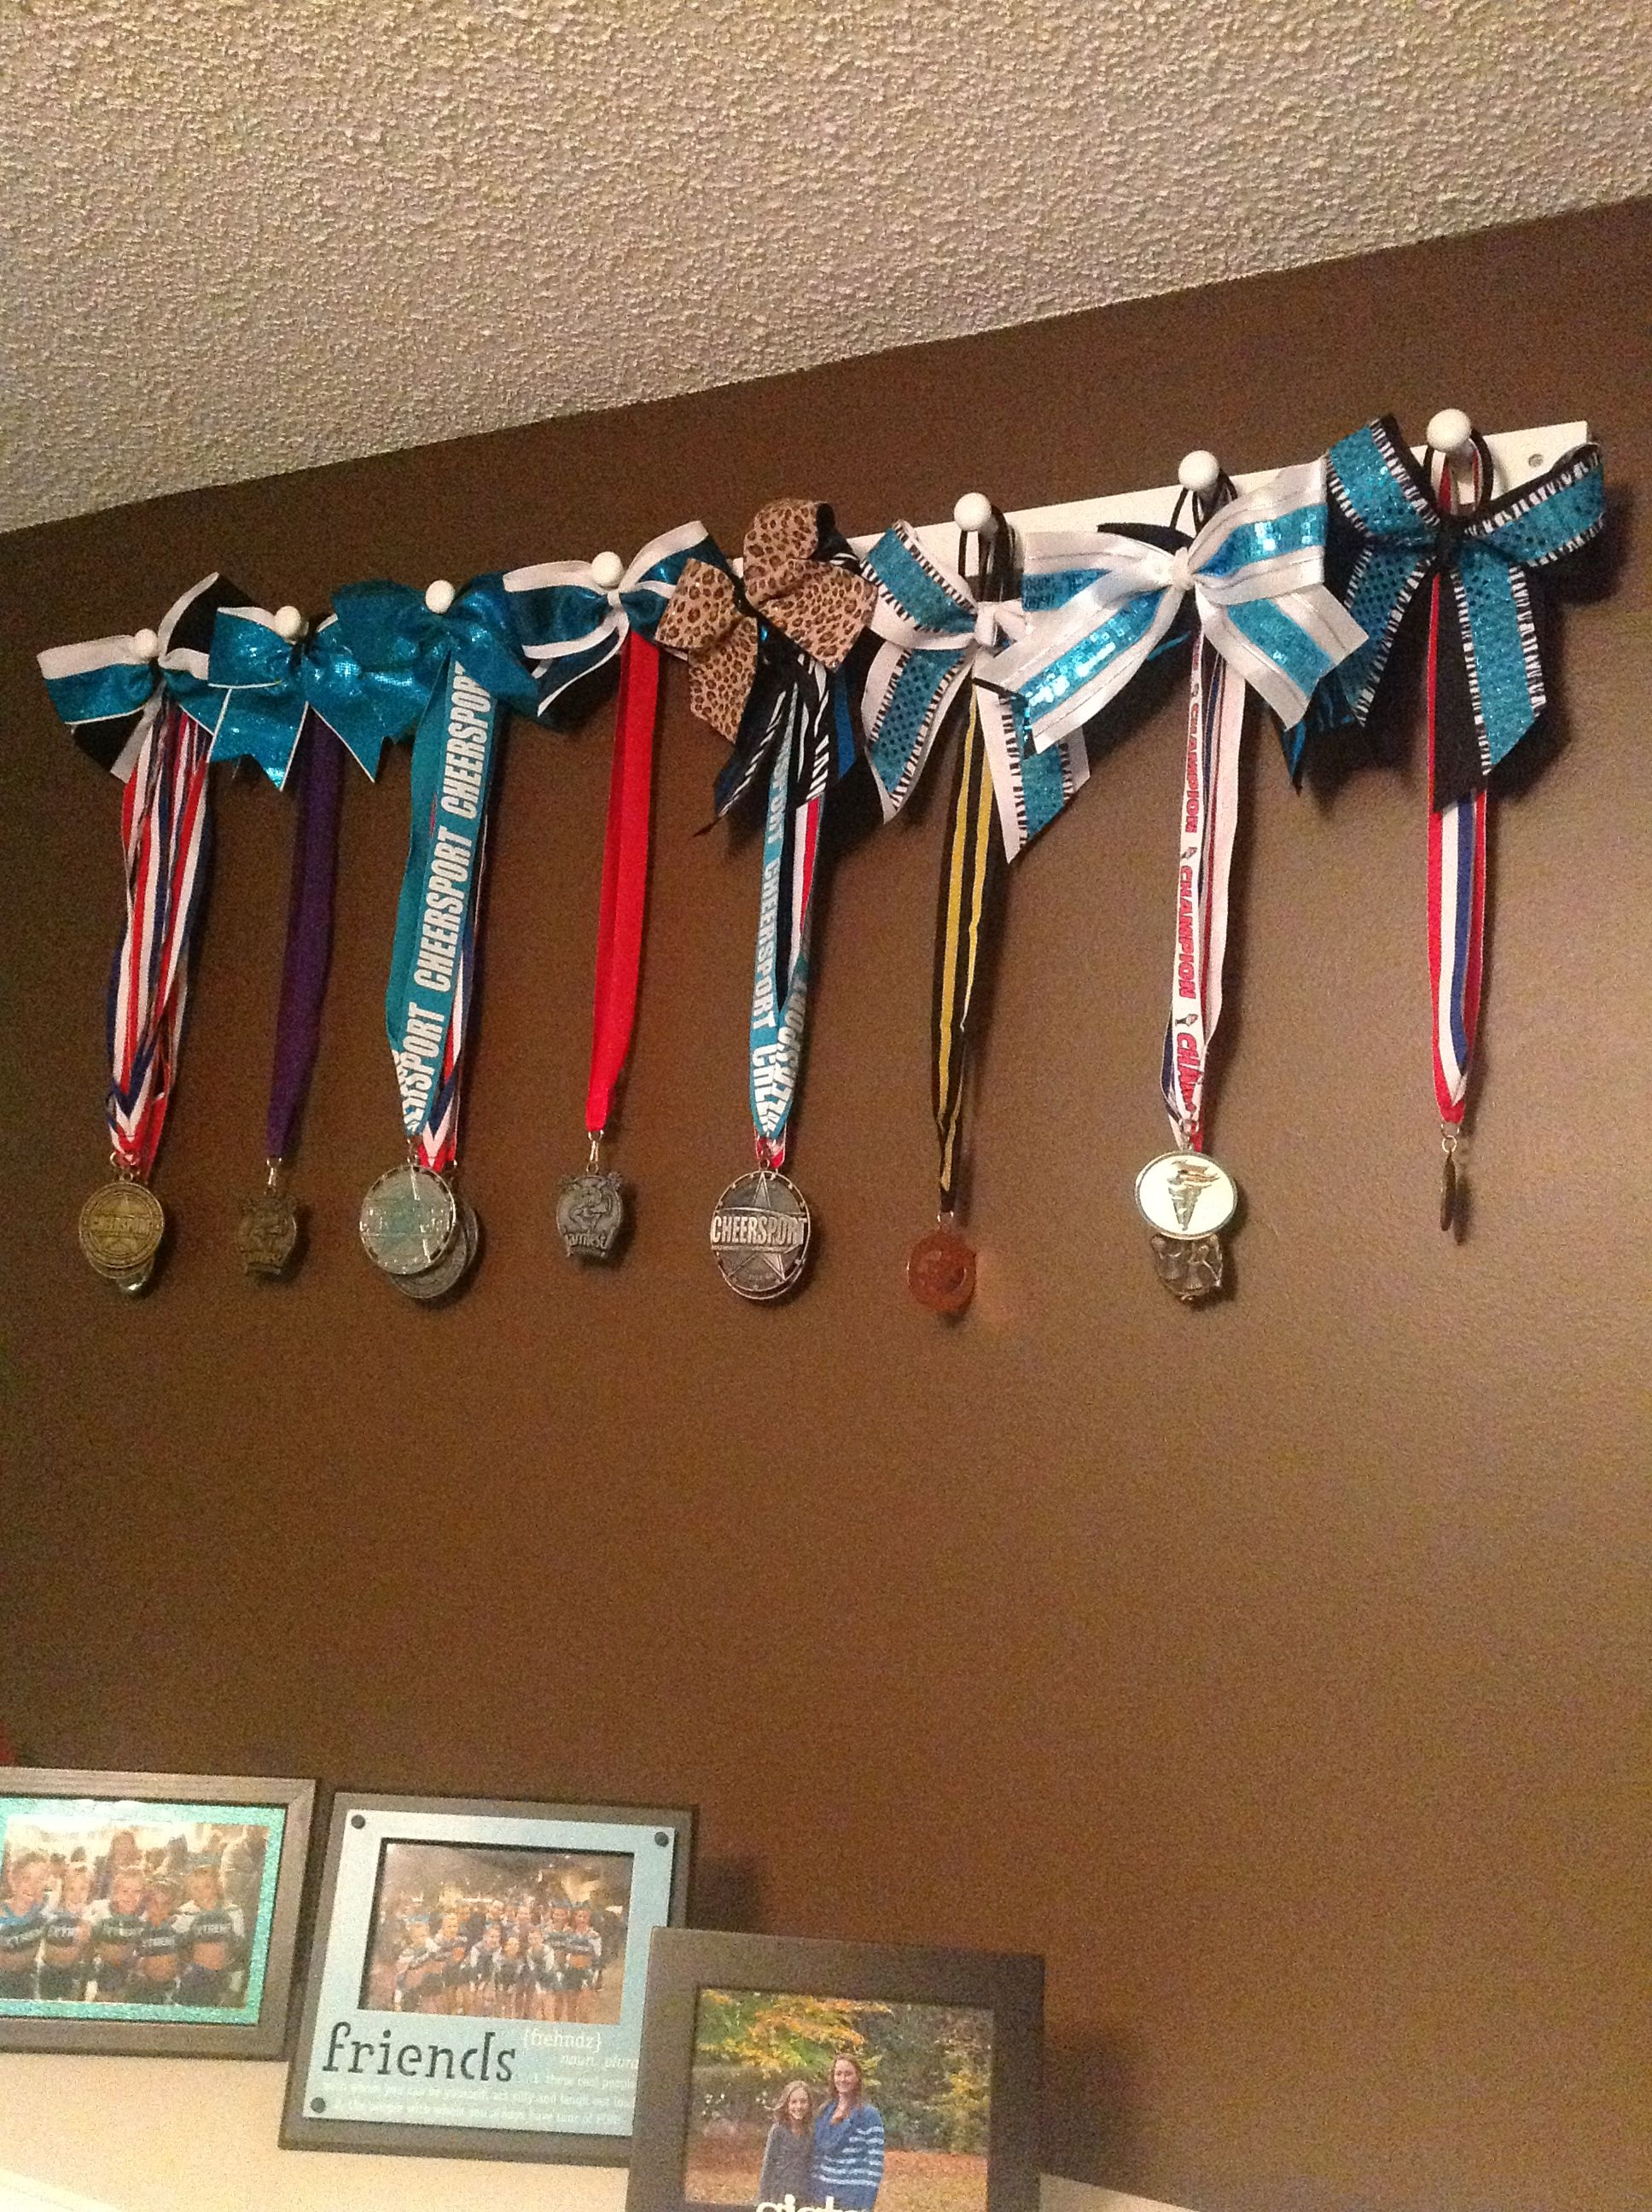 Peg Strips From Loweu0027s Great Way To Display Medalu0027s And ...